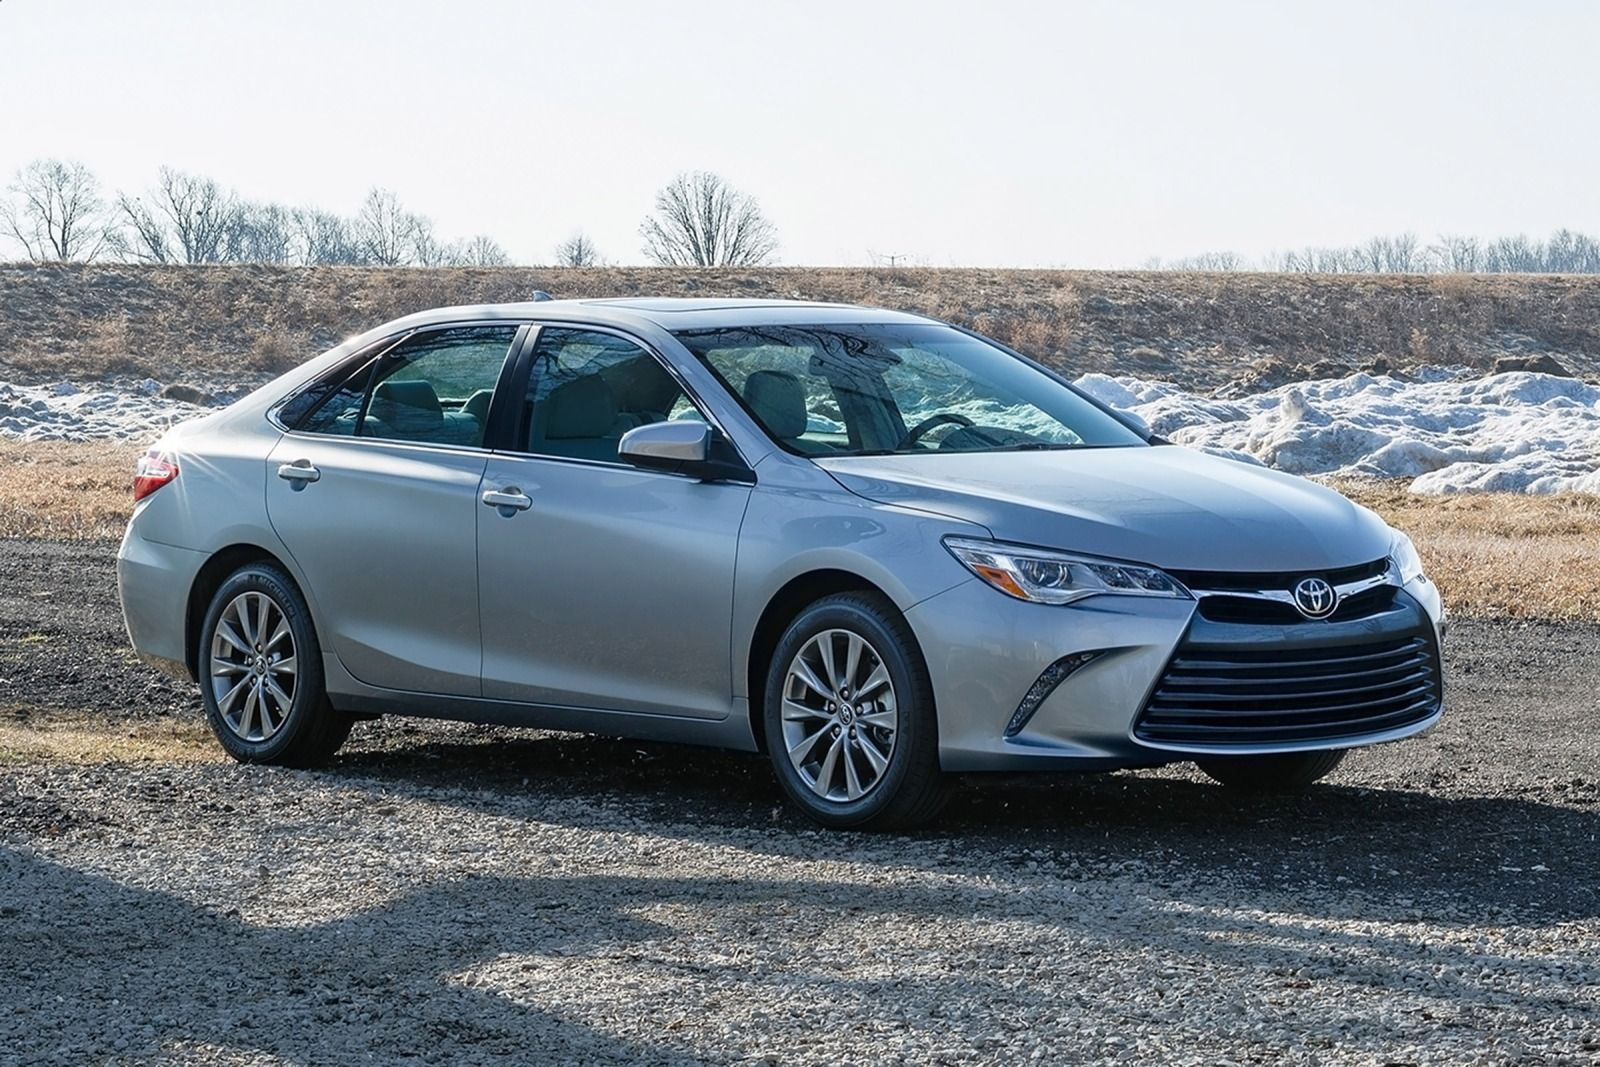 2015 Toyota Camry Photos, Informations, Articles - BestCarMag.com